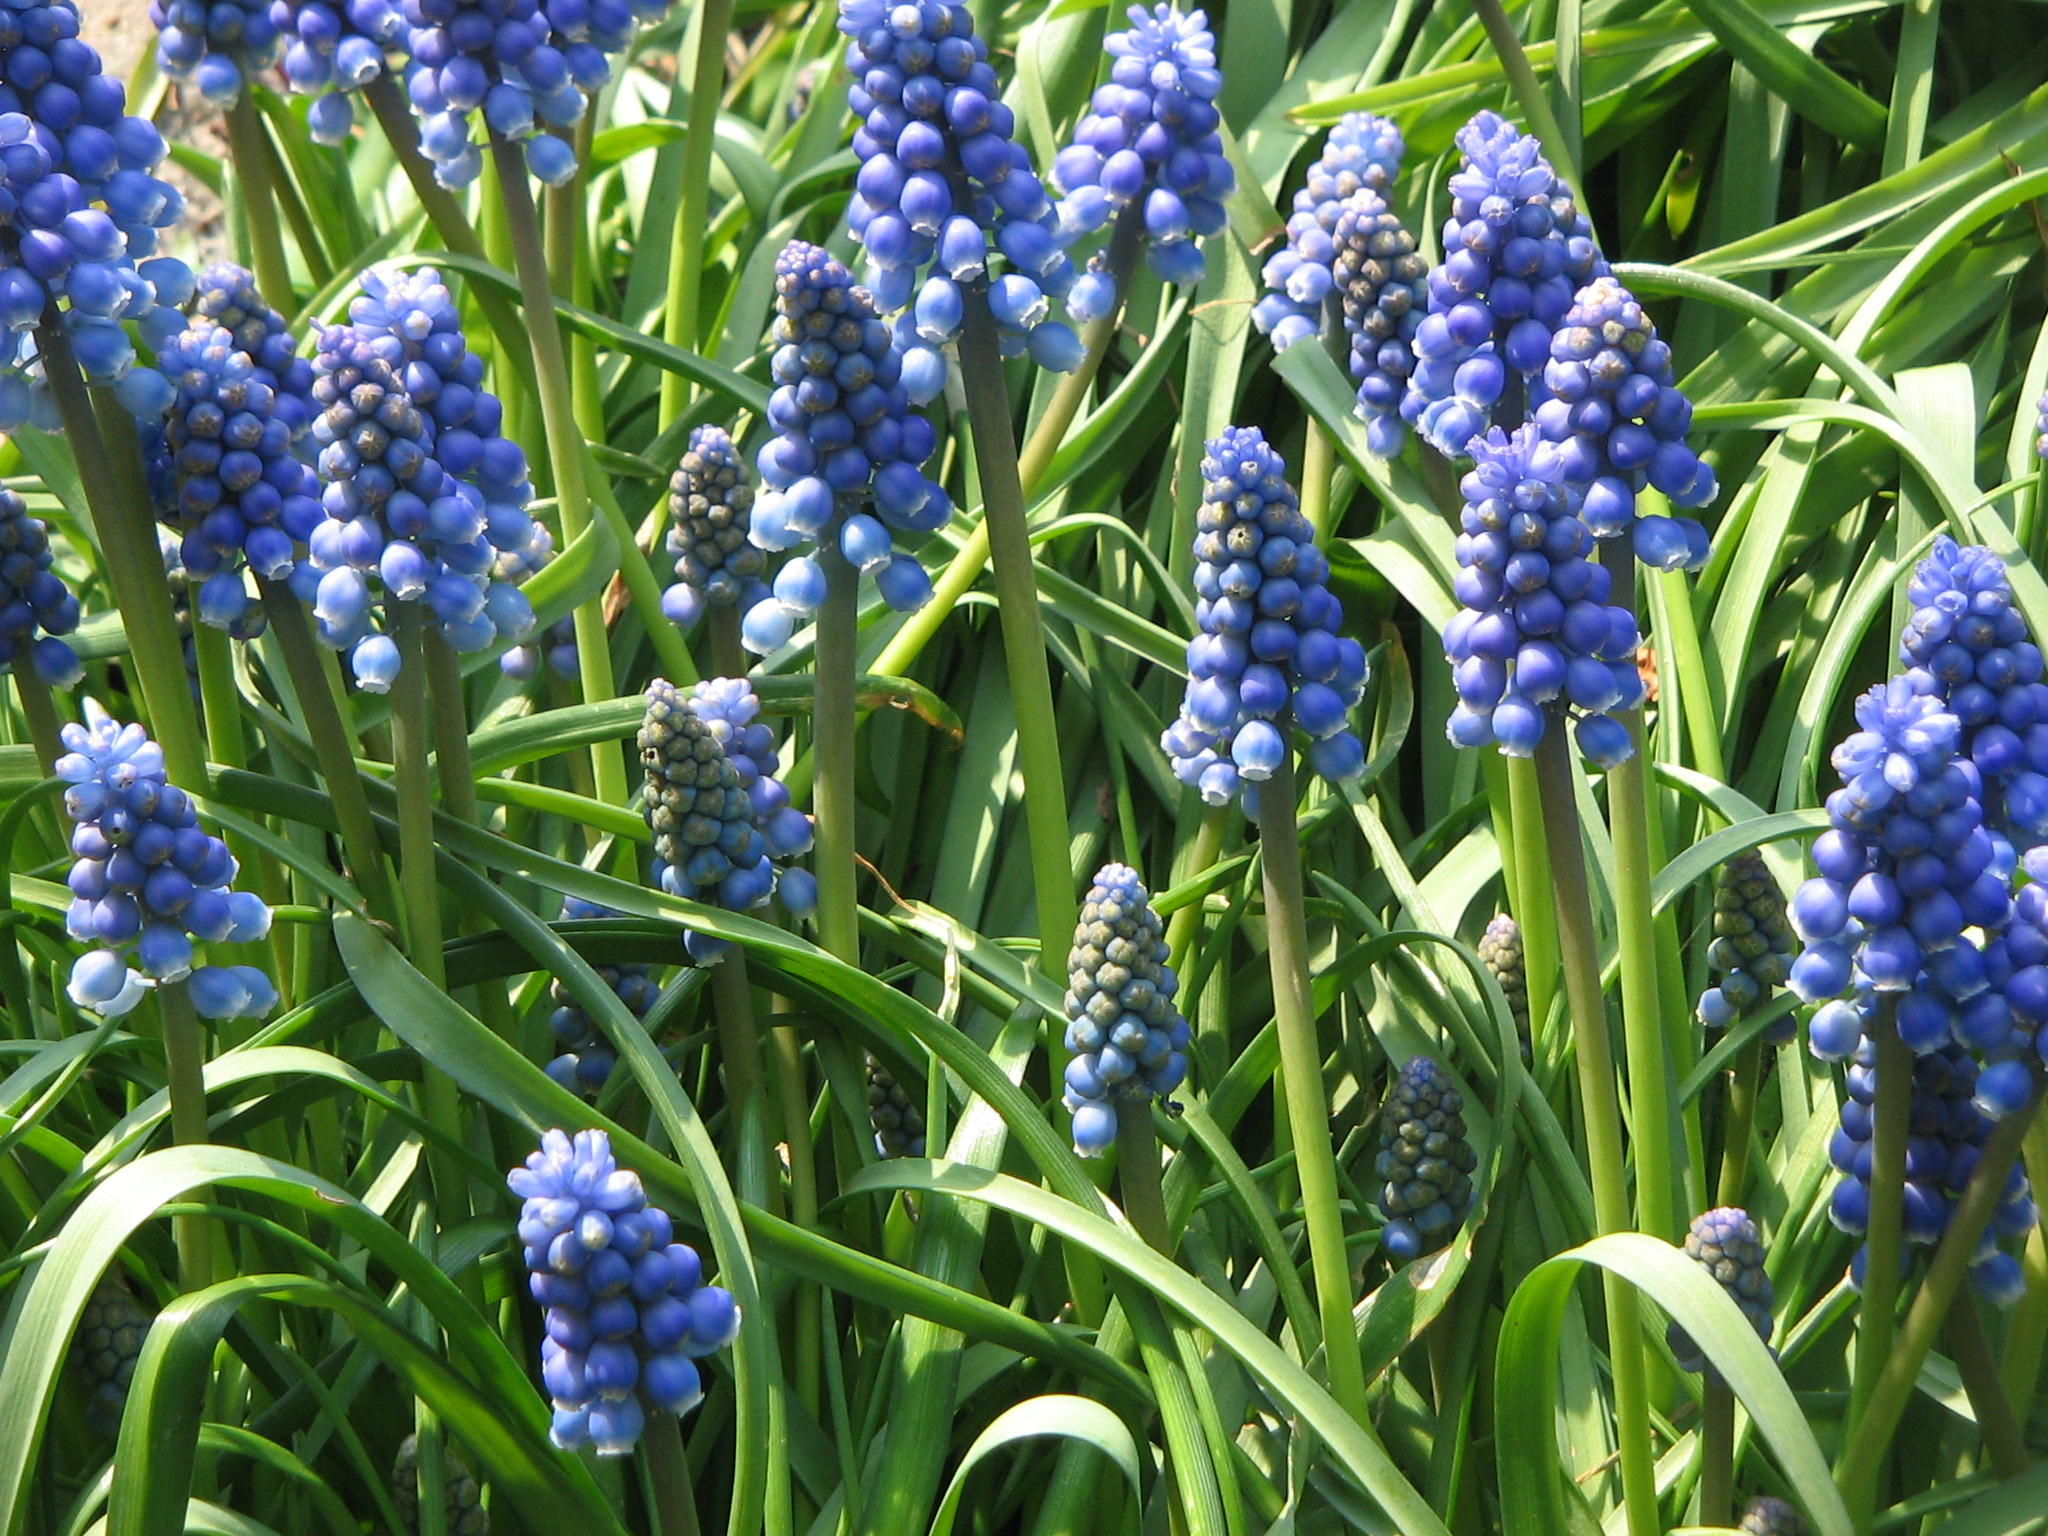 File:Muscari armeniacum clump.jpg